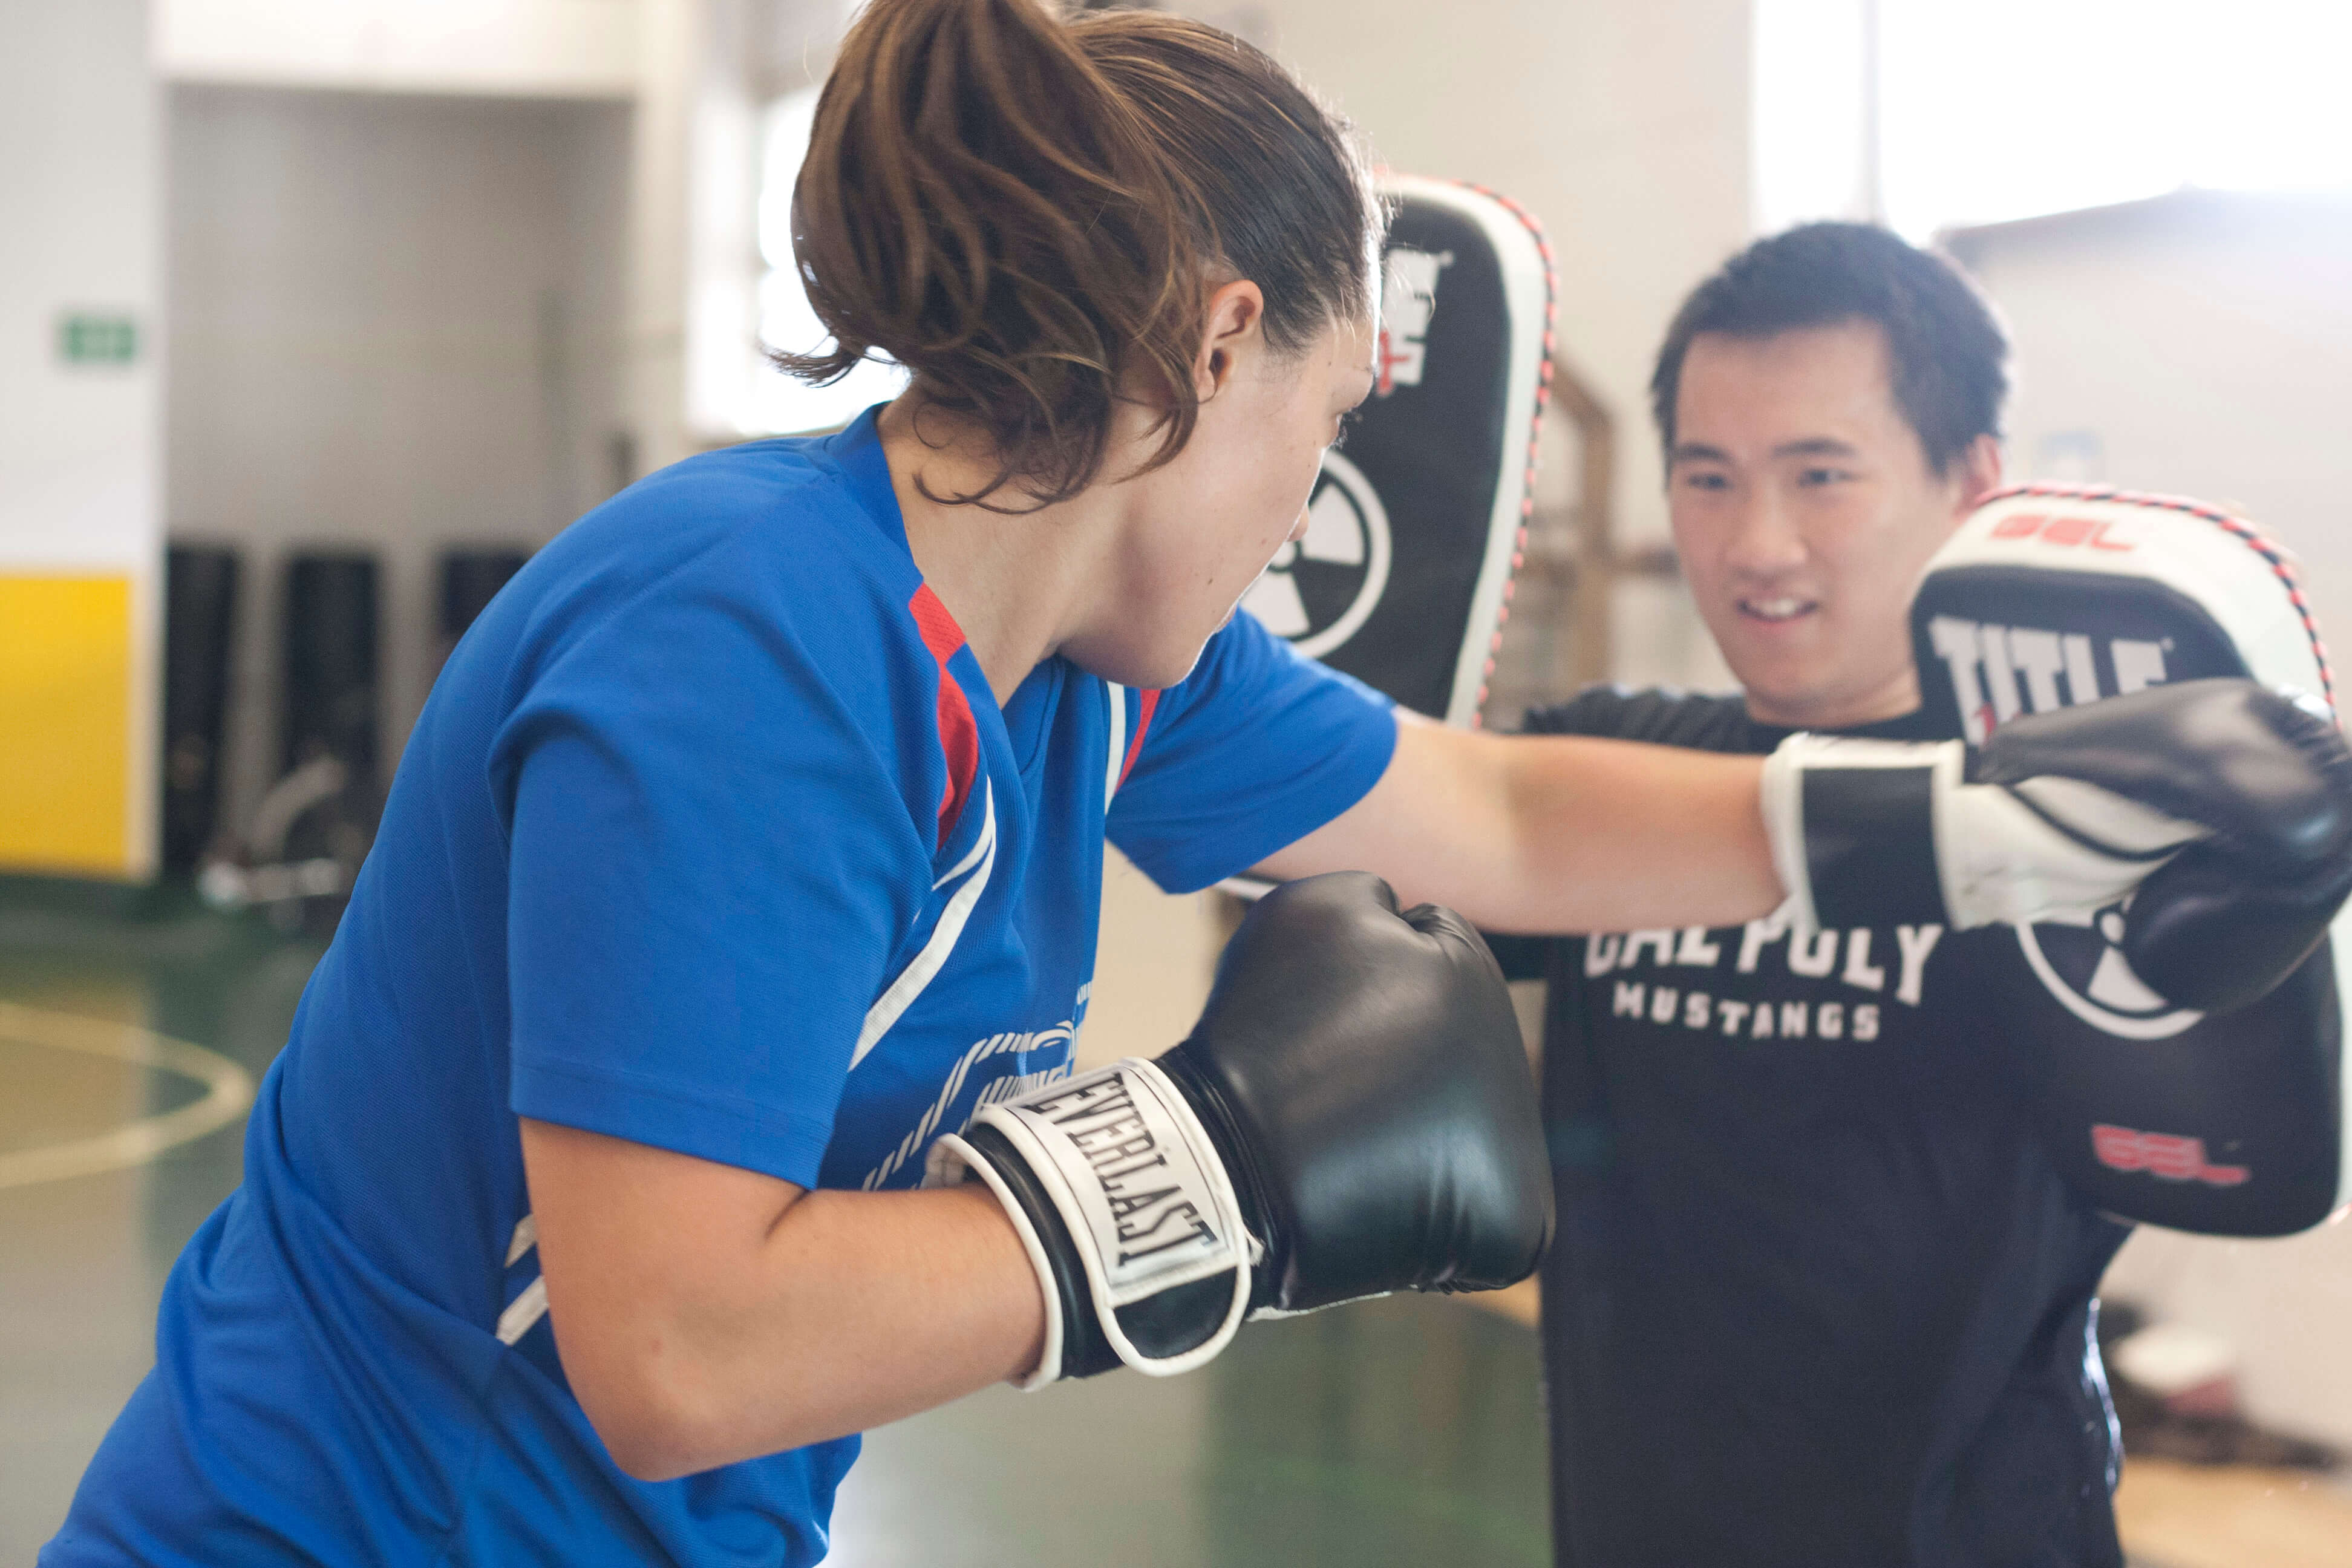 Students participate in Muay Thai Kickboxing